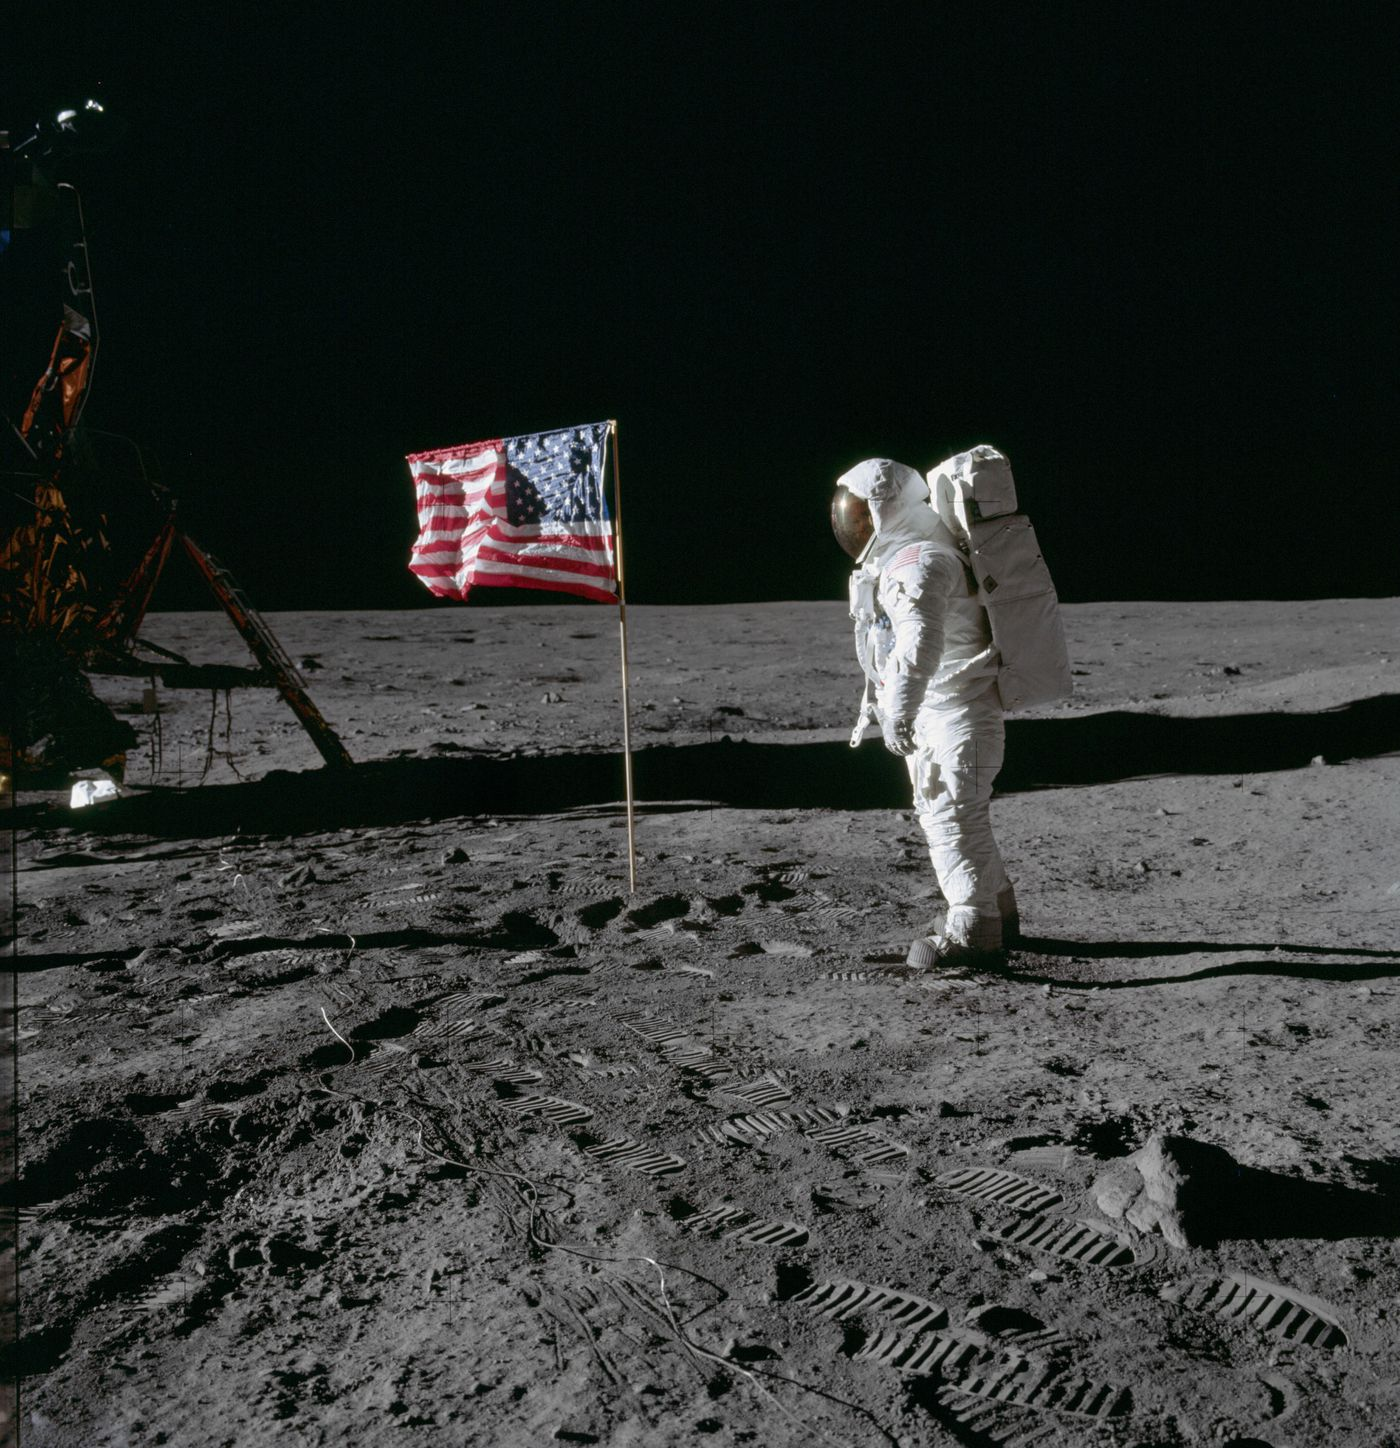 Buzz Aldrin poses for a photo next to the U.S. flag. MUST CREDIT: NASA